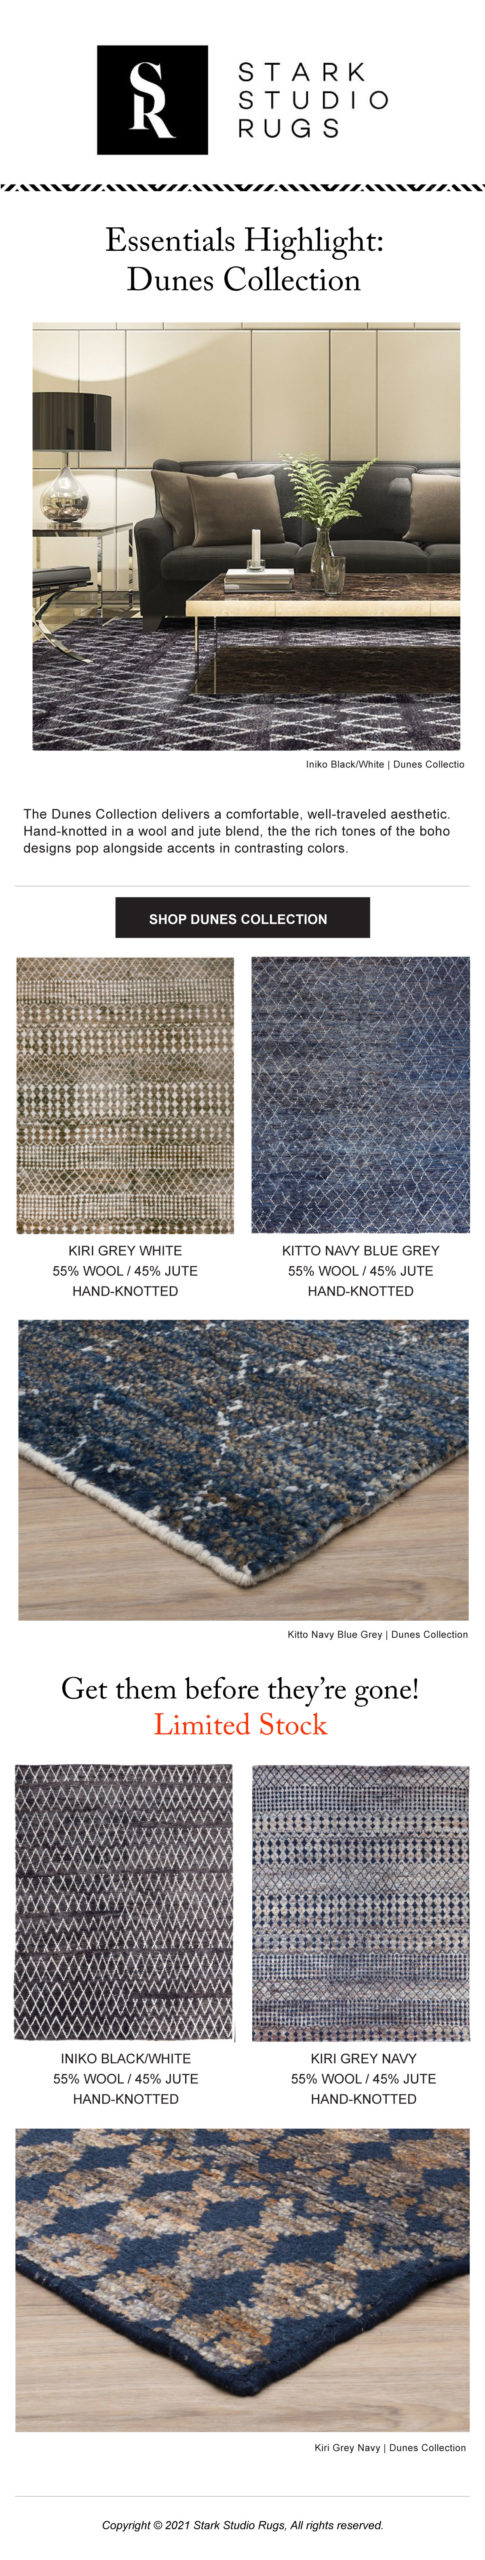 Stark Studio Rugs Dunes Collection Highlight images